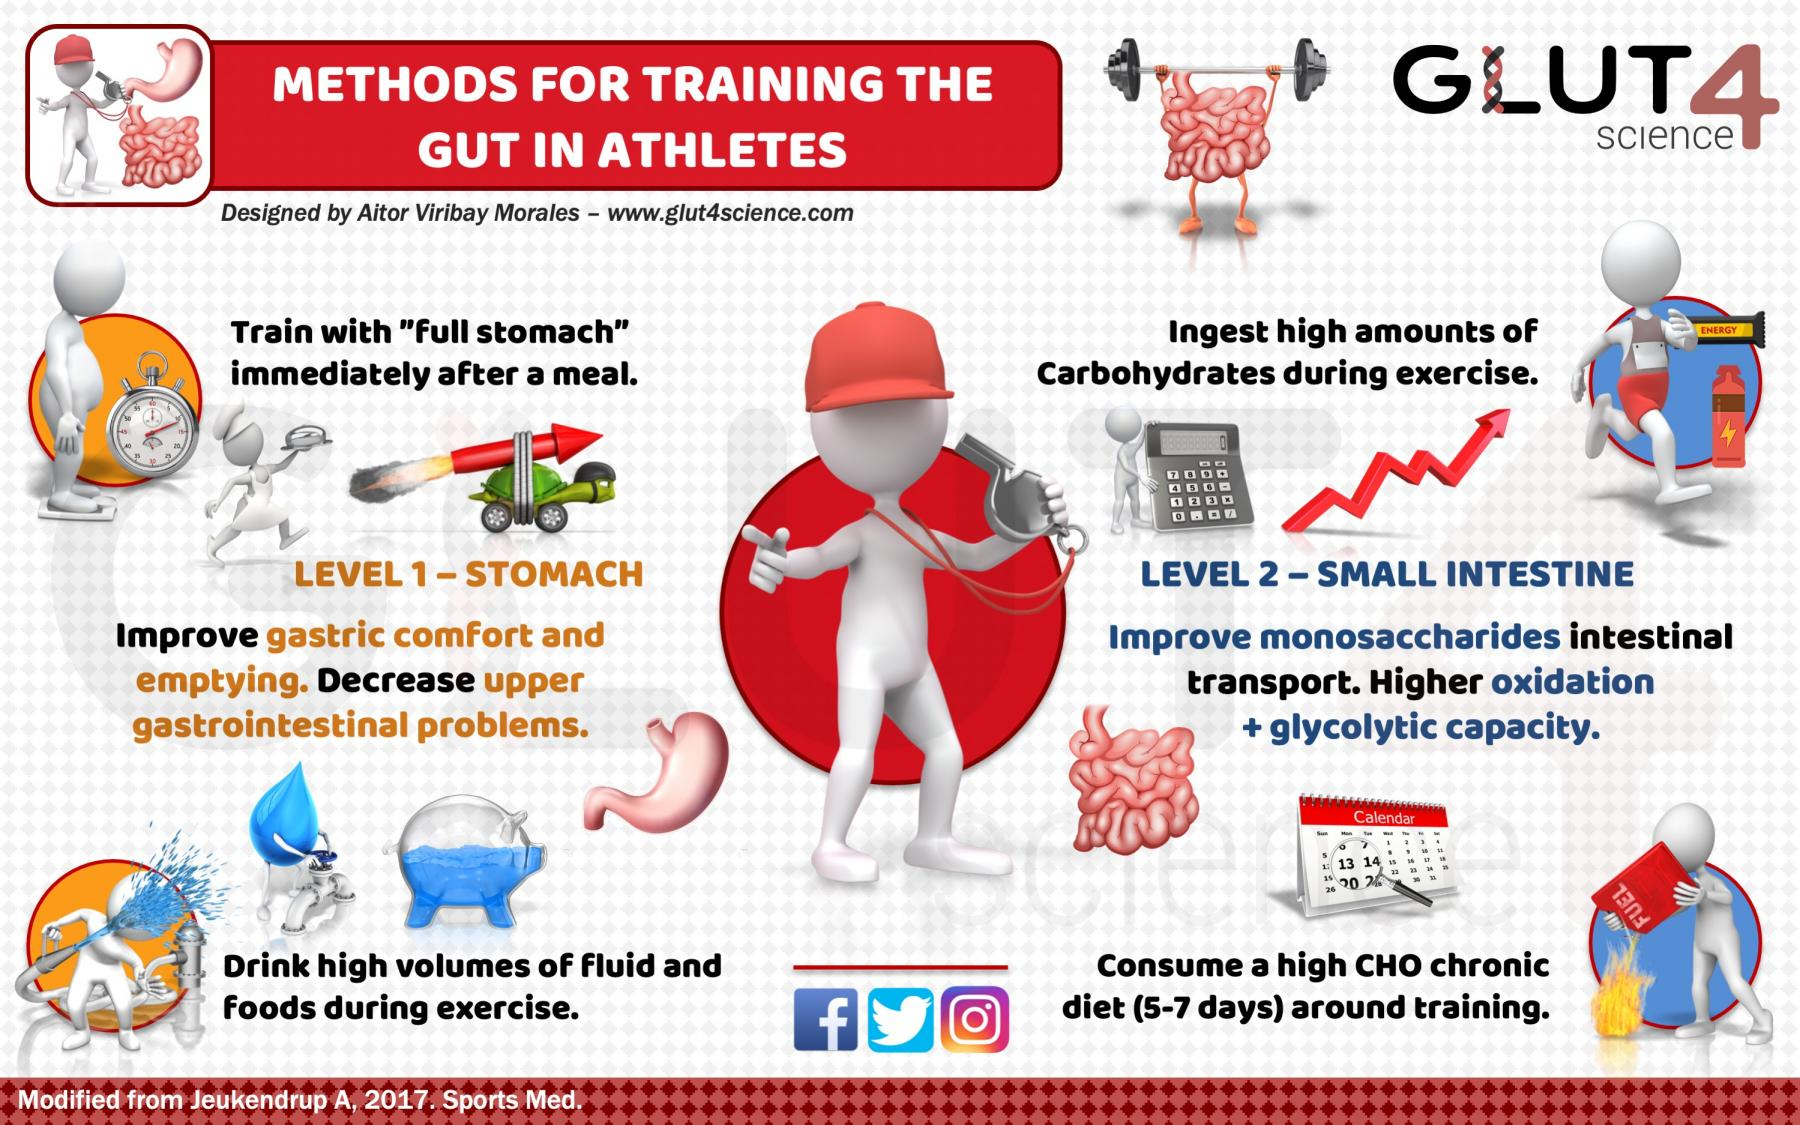 Methods for training the gut in athletes